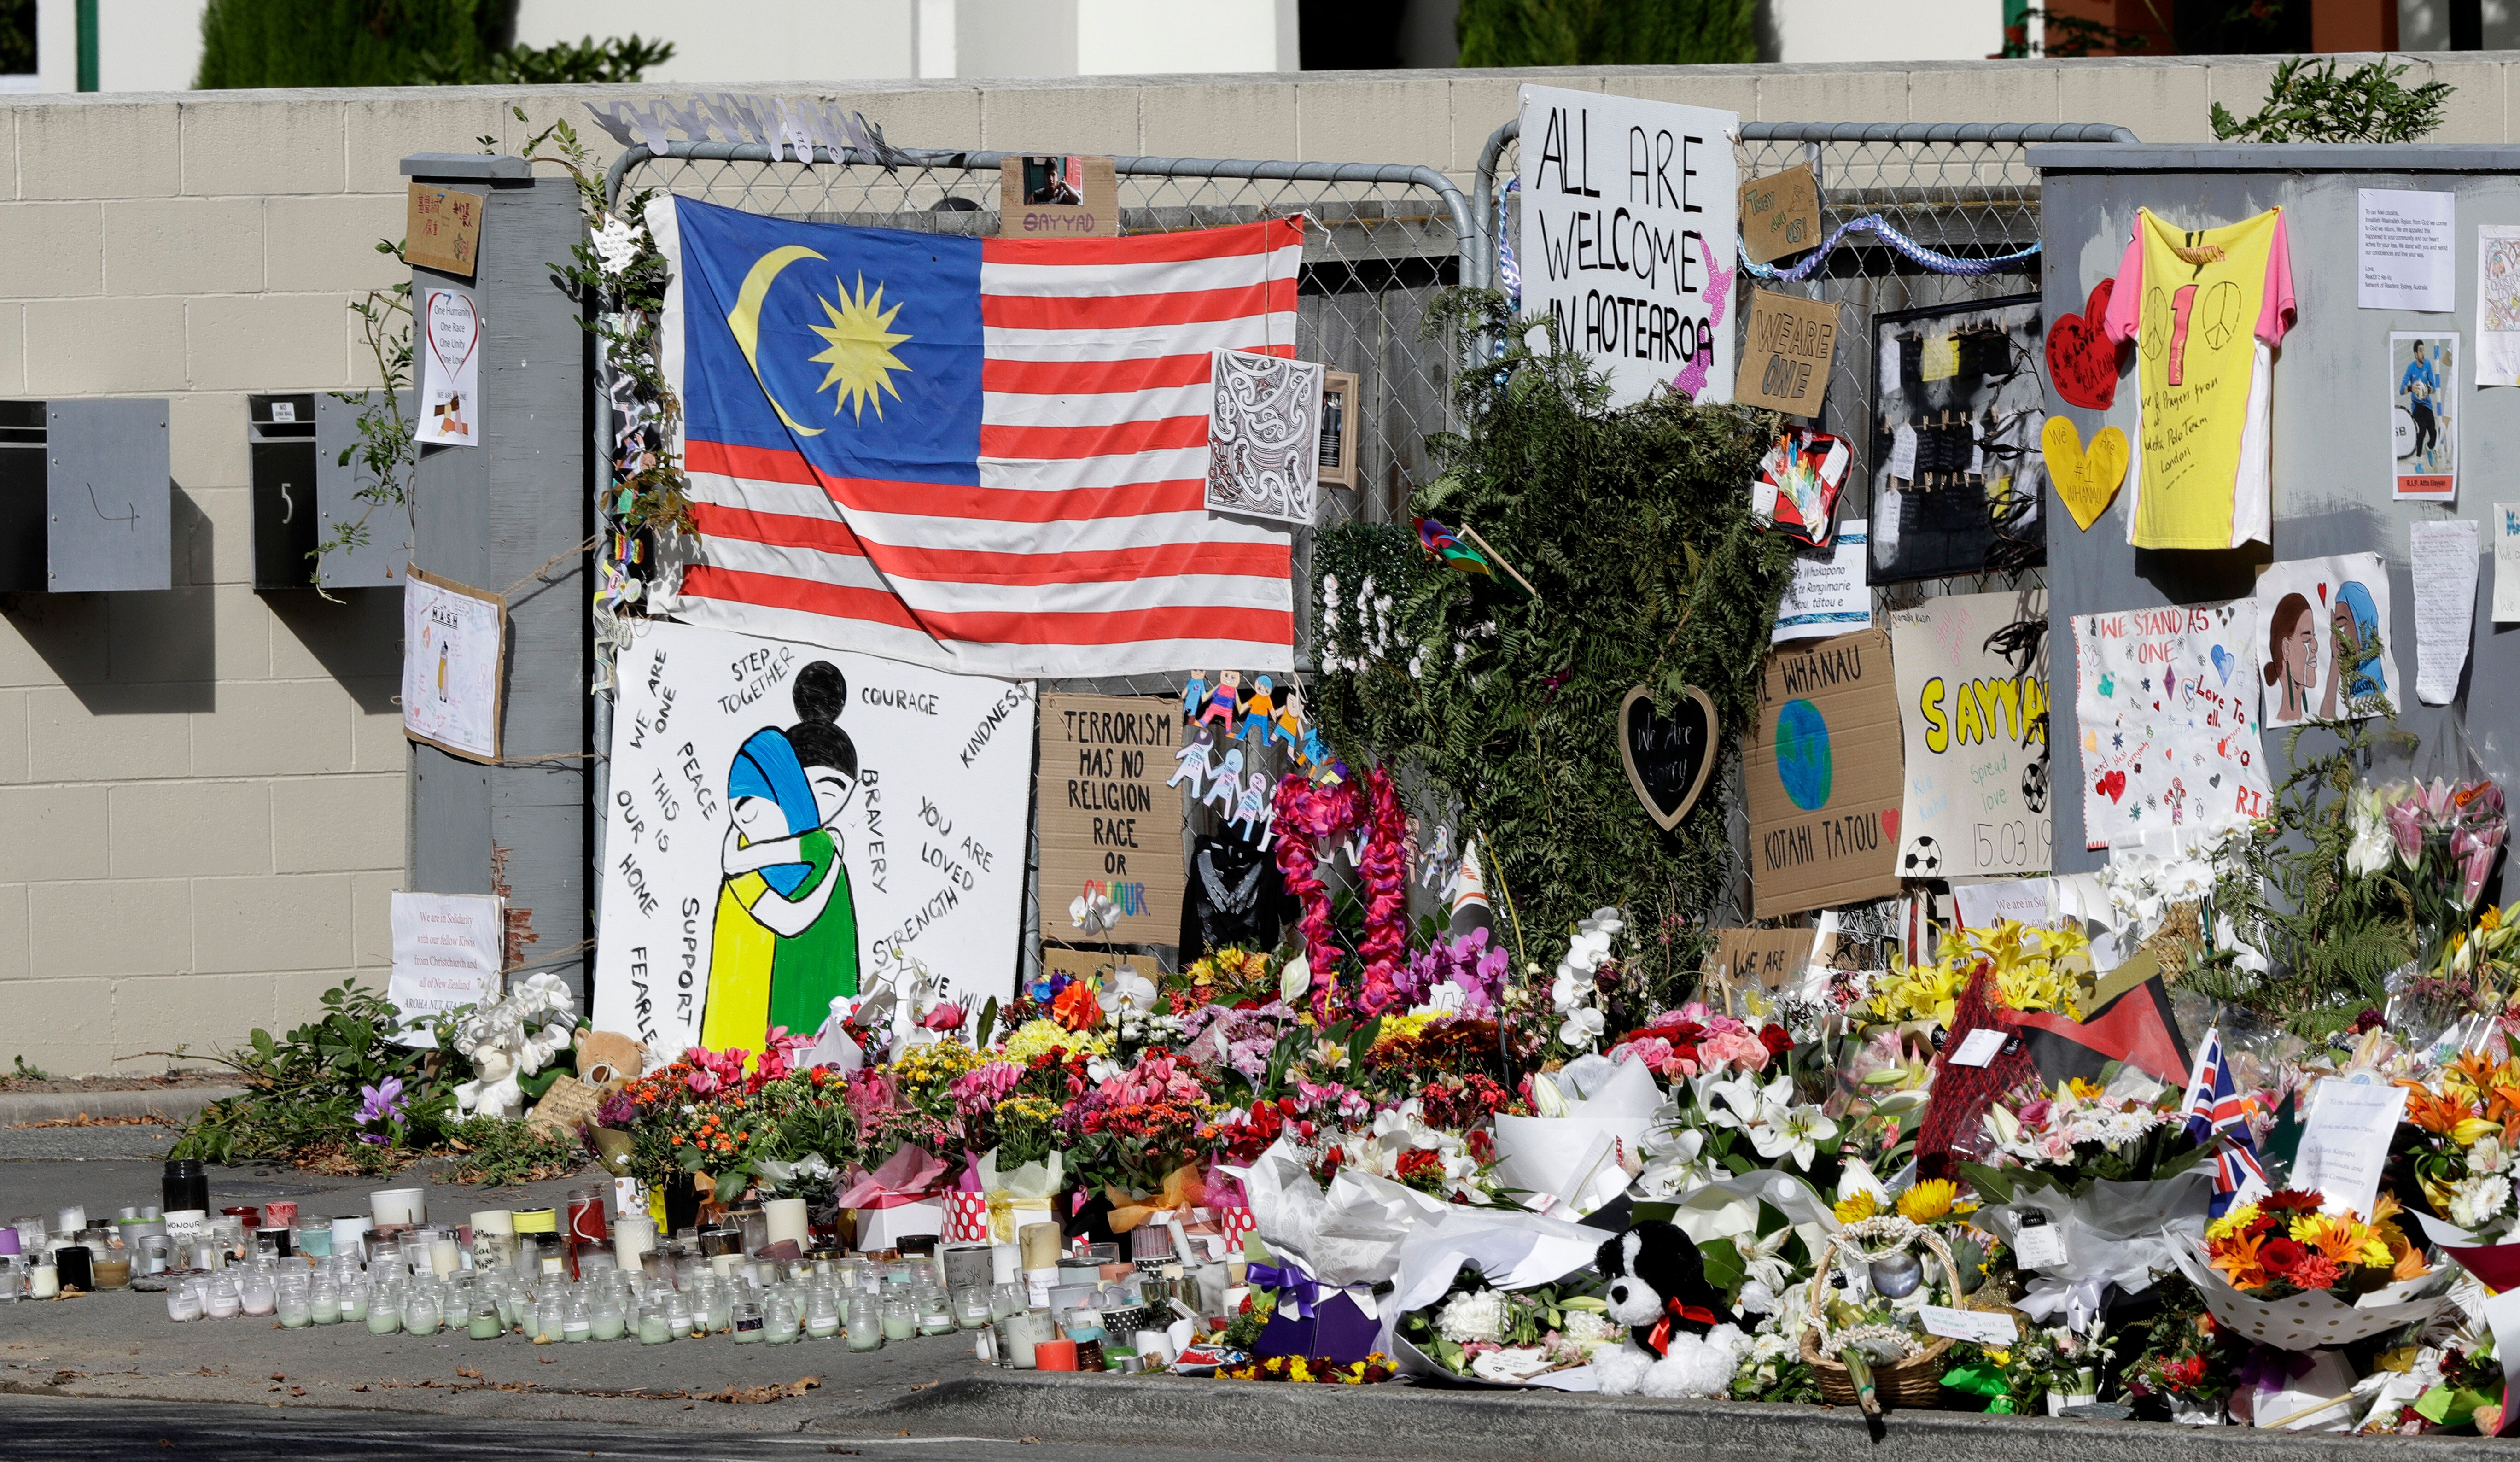 Tributes hang on the fence outside the Al Noor mosque in Christchurch, New Zealand, Friday, March 22, 2019. In a day without precedent in New Zealand, people across the country were planning to observe the Muslim call to prayer as the nation reflected on the moment one week ago when 50 people were slaughtered at two mosques. (AP Photo/Mark Baker)